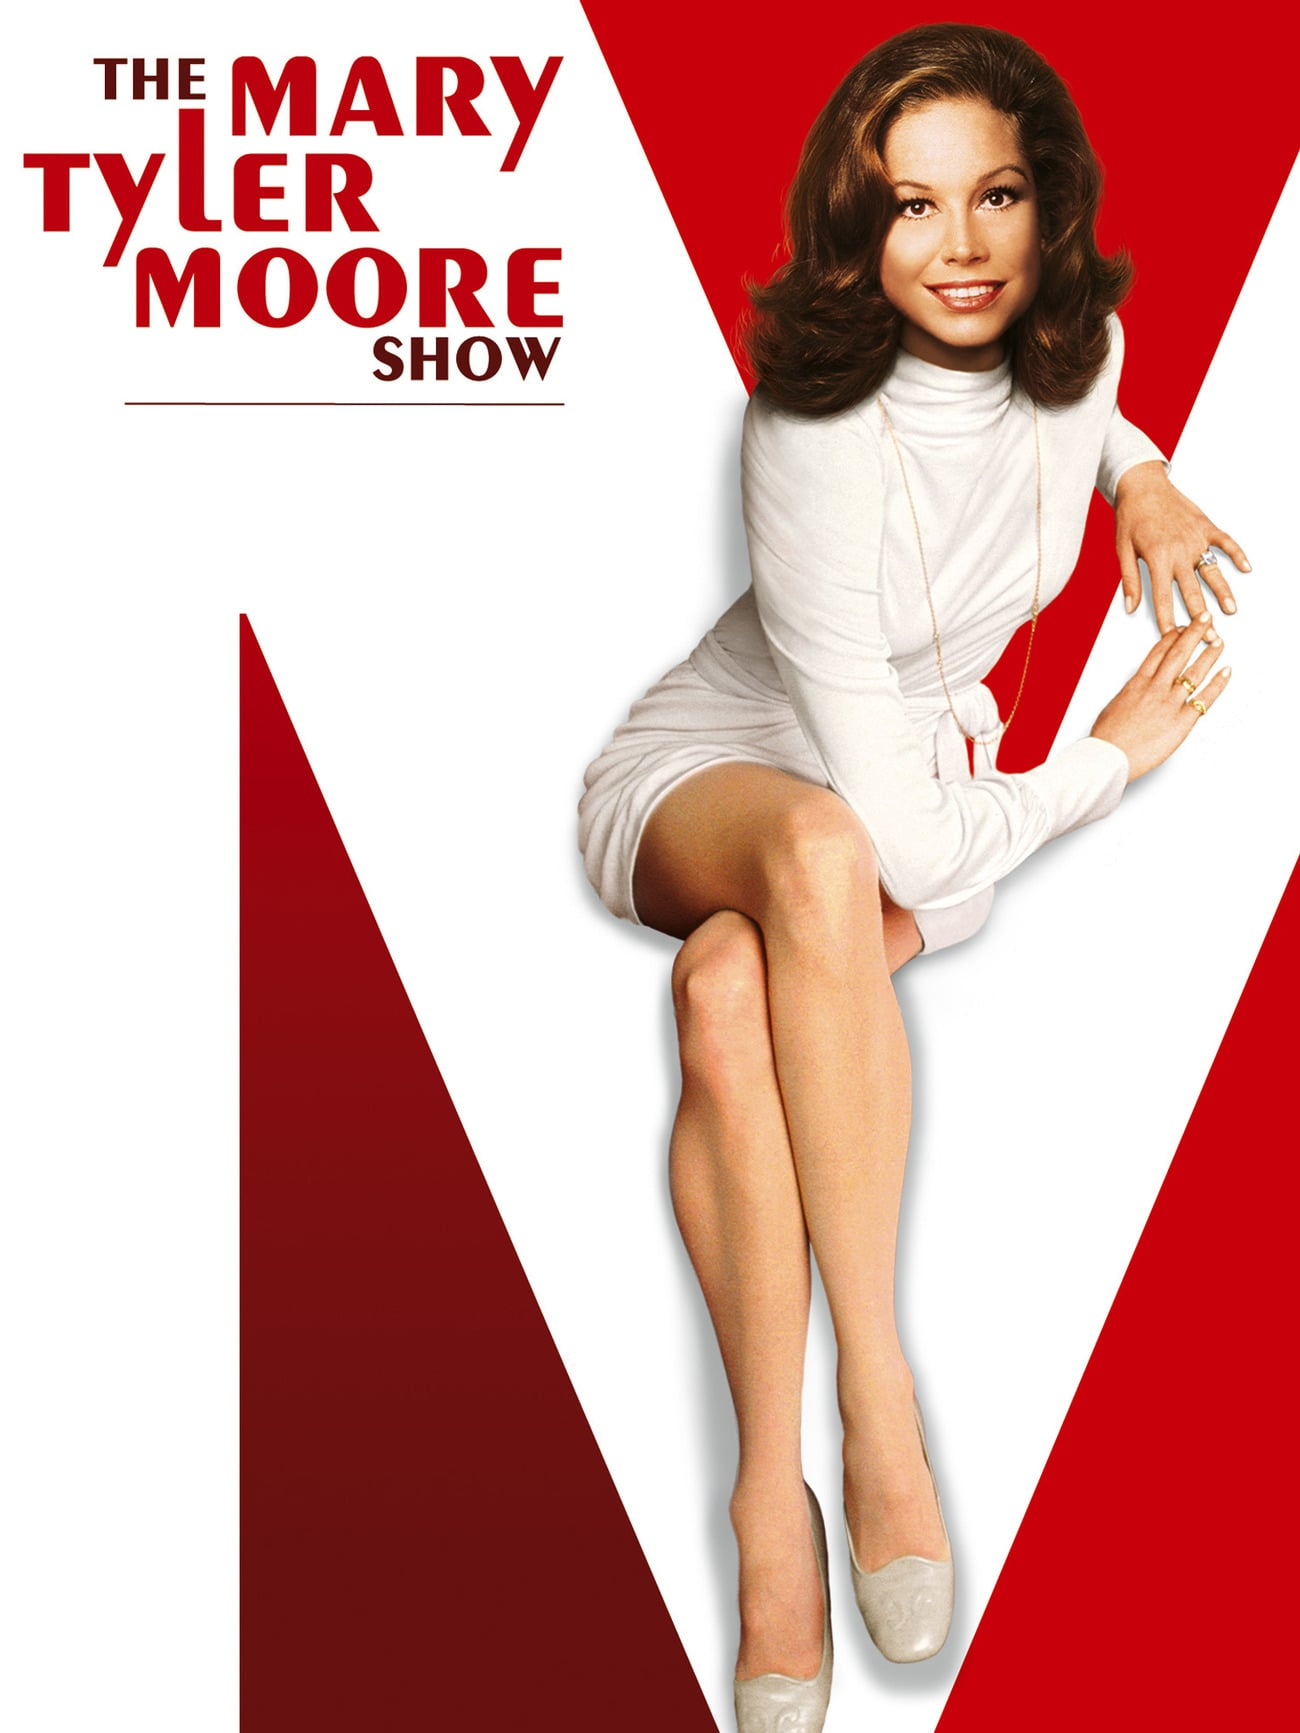 Mary Tyler Moore For mobile